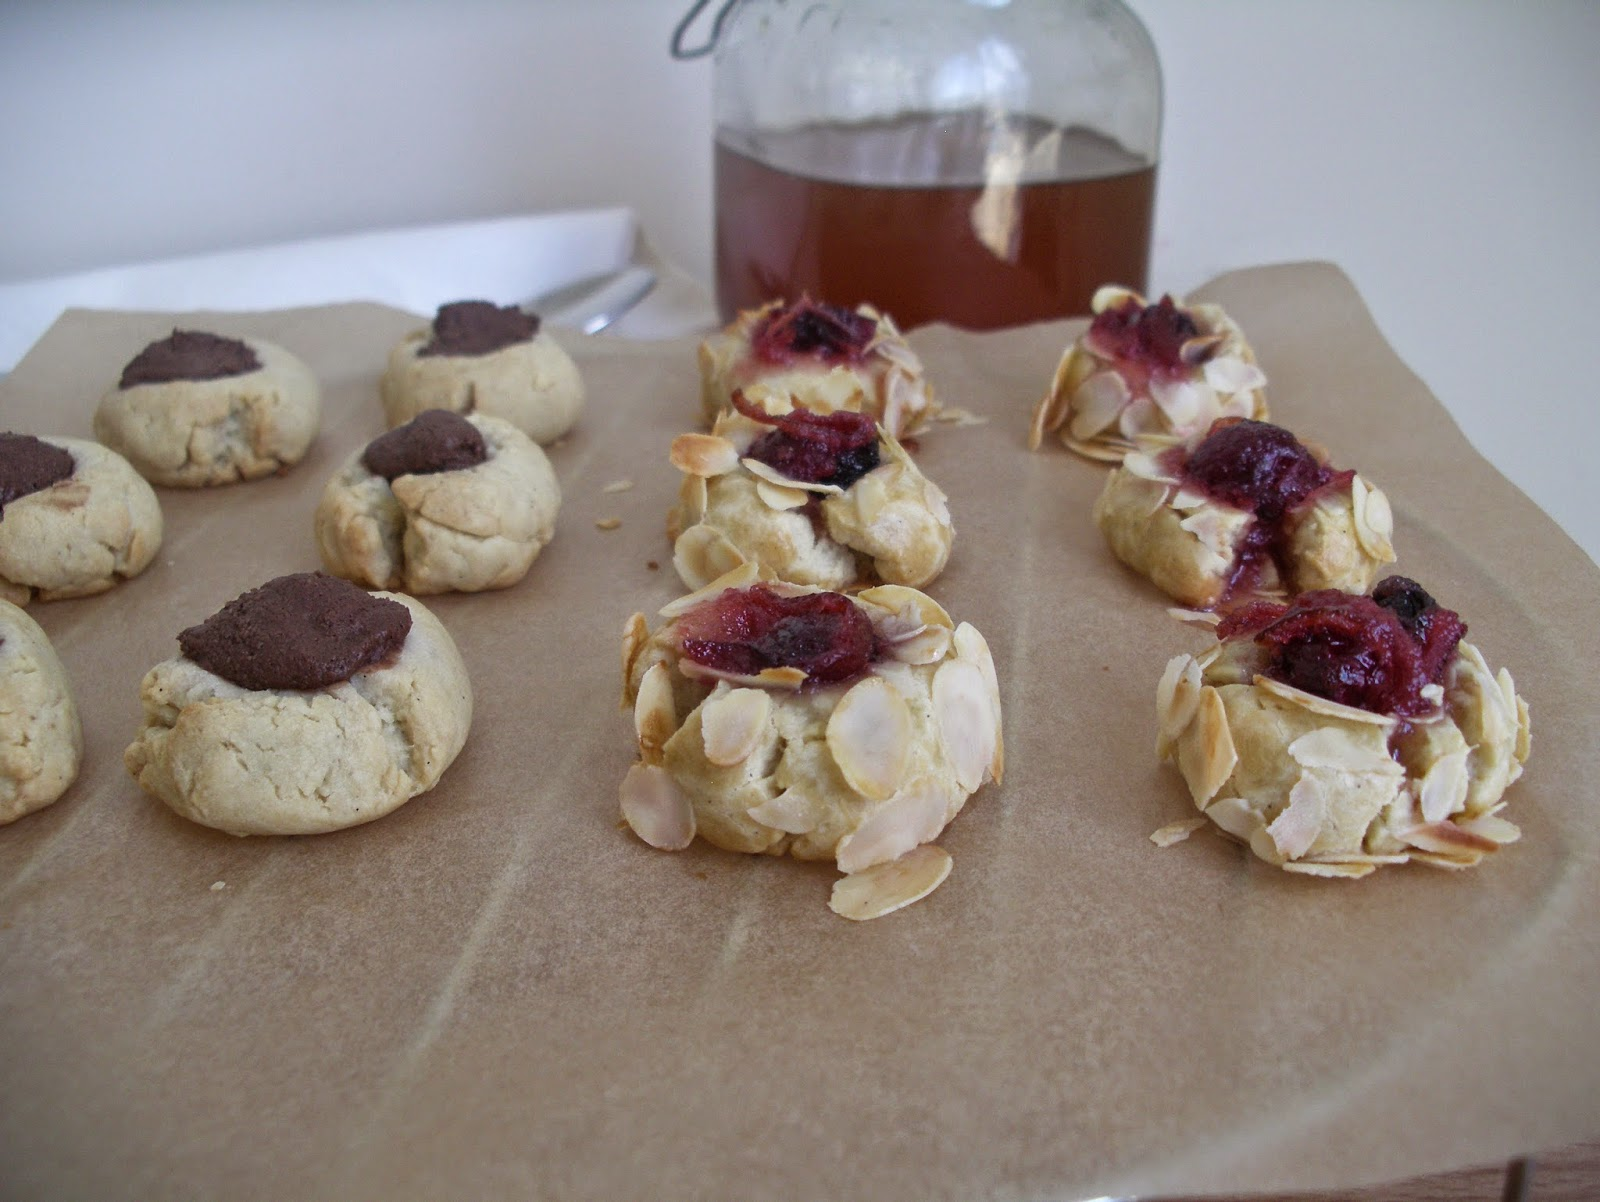 KITCHEN IN THE SAND: Honey thumbprint cookies